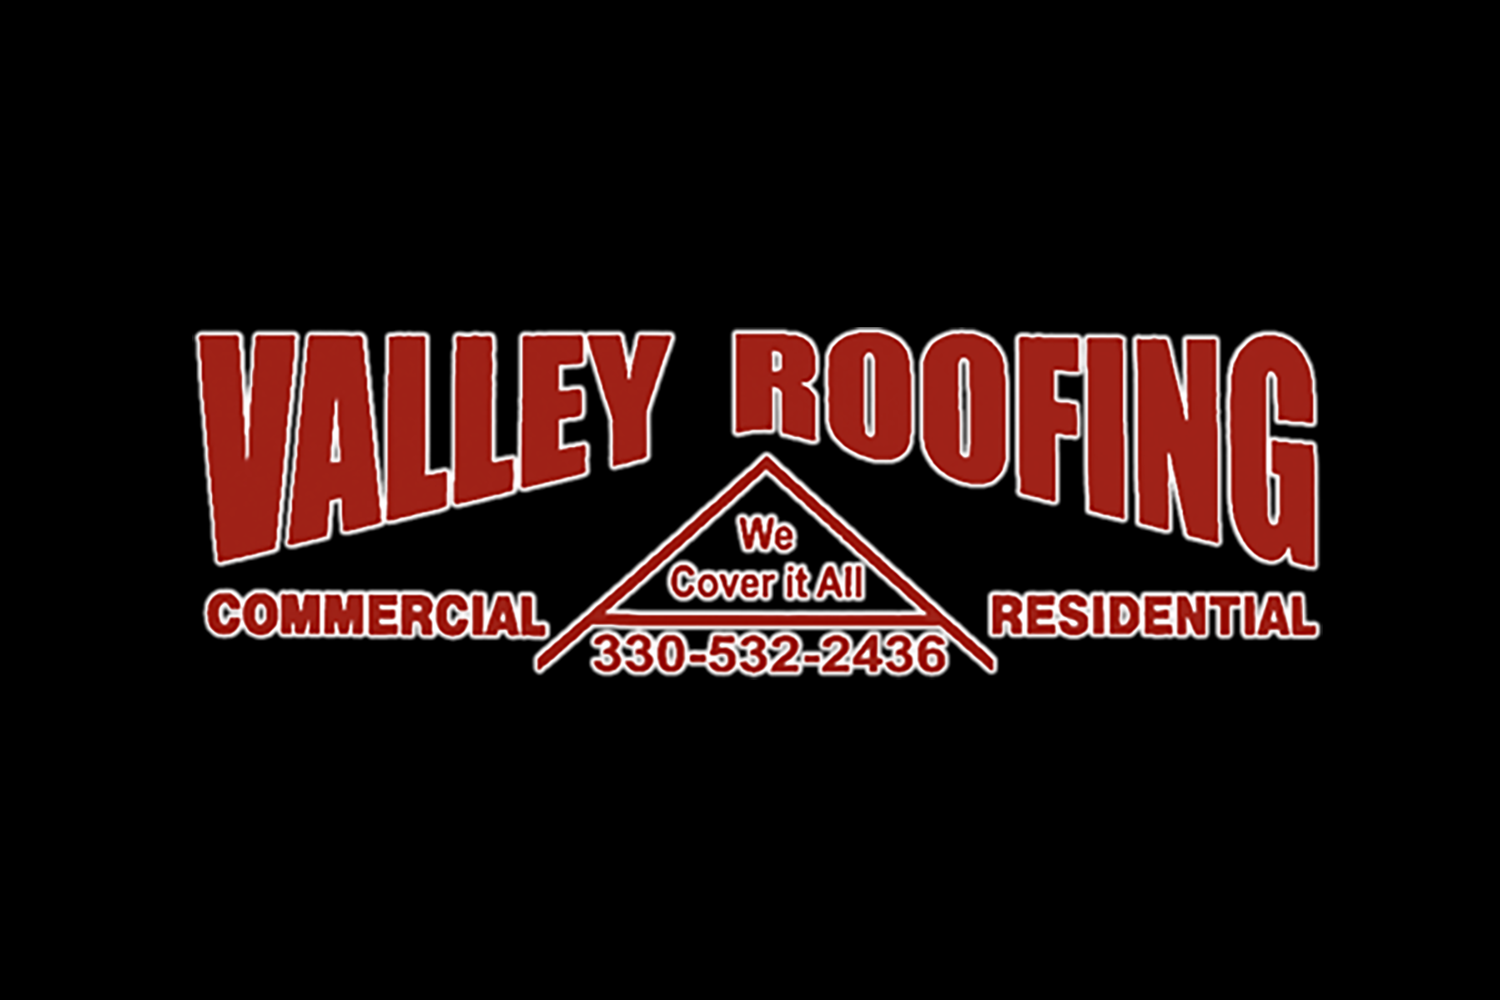 The official logo of Valley Roofing of Wellsville, Ohio.